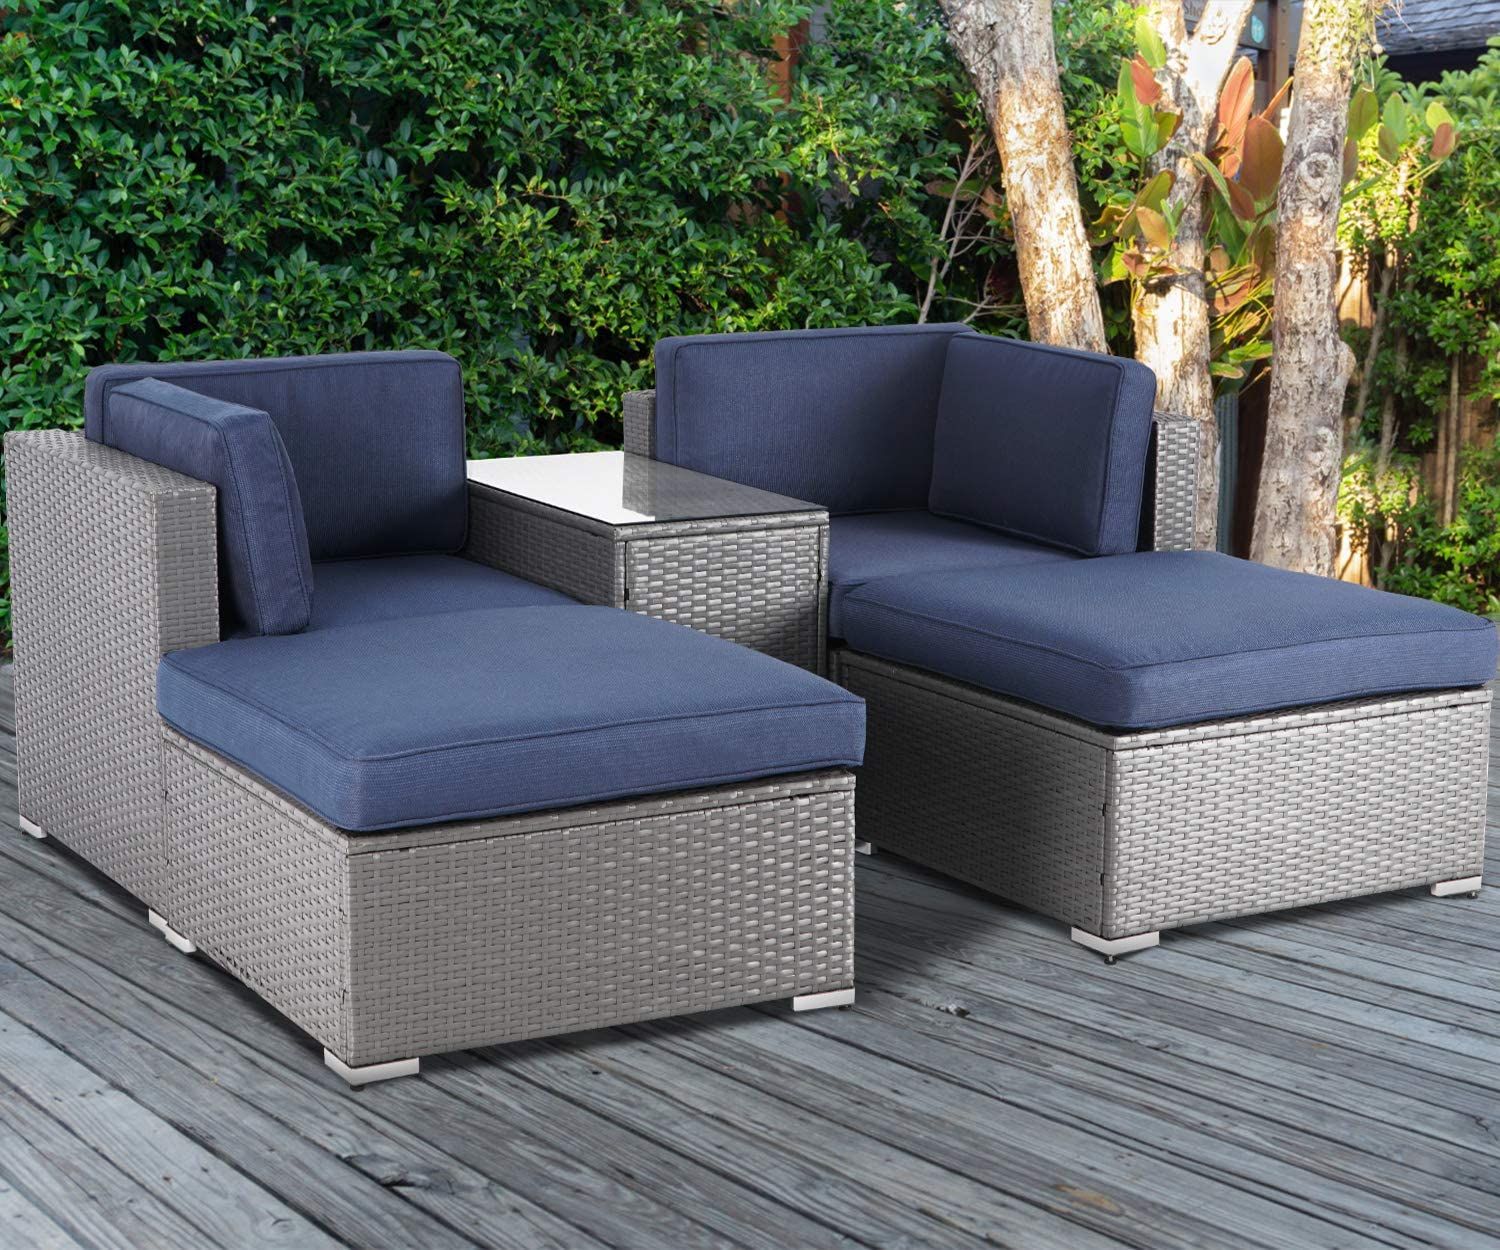 Brown Cushion All-Weather Grey Wicker Sectional Sofa with Glass Table SUNCROWN 5 Piece Patio Outdoor Furniture Sets